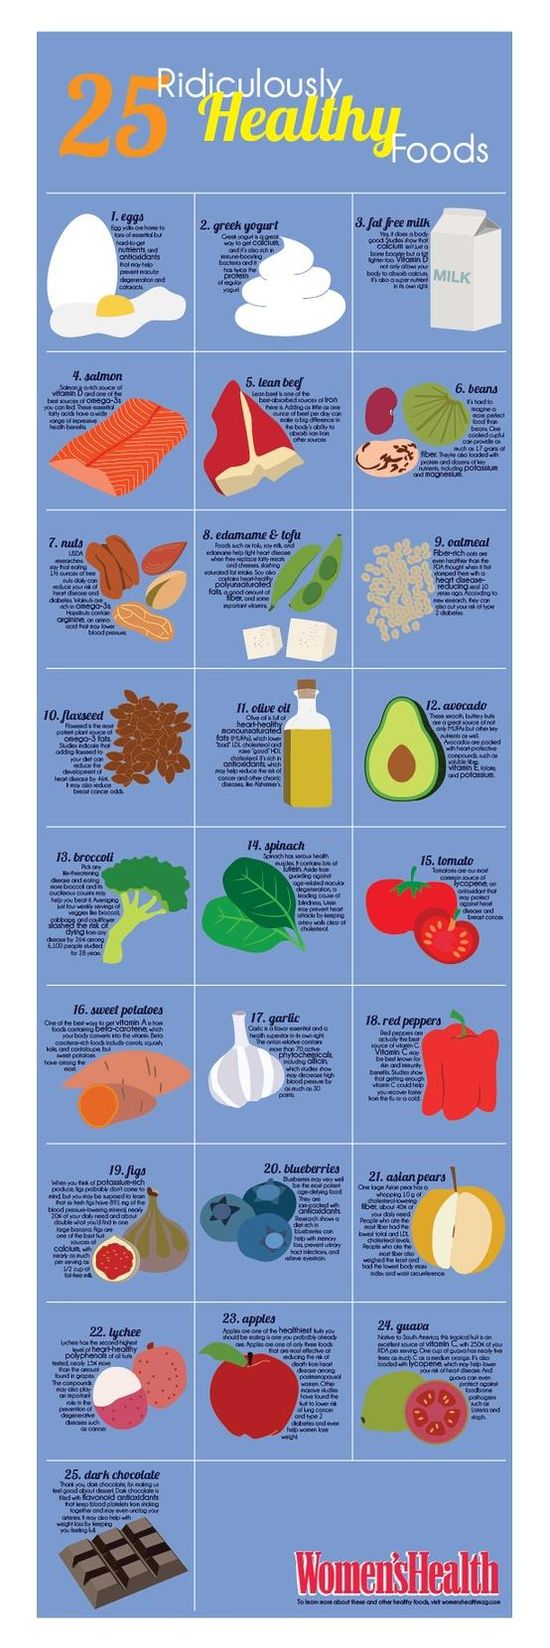 25 Ridiculously Healthy Foods #health